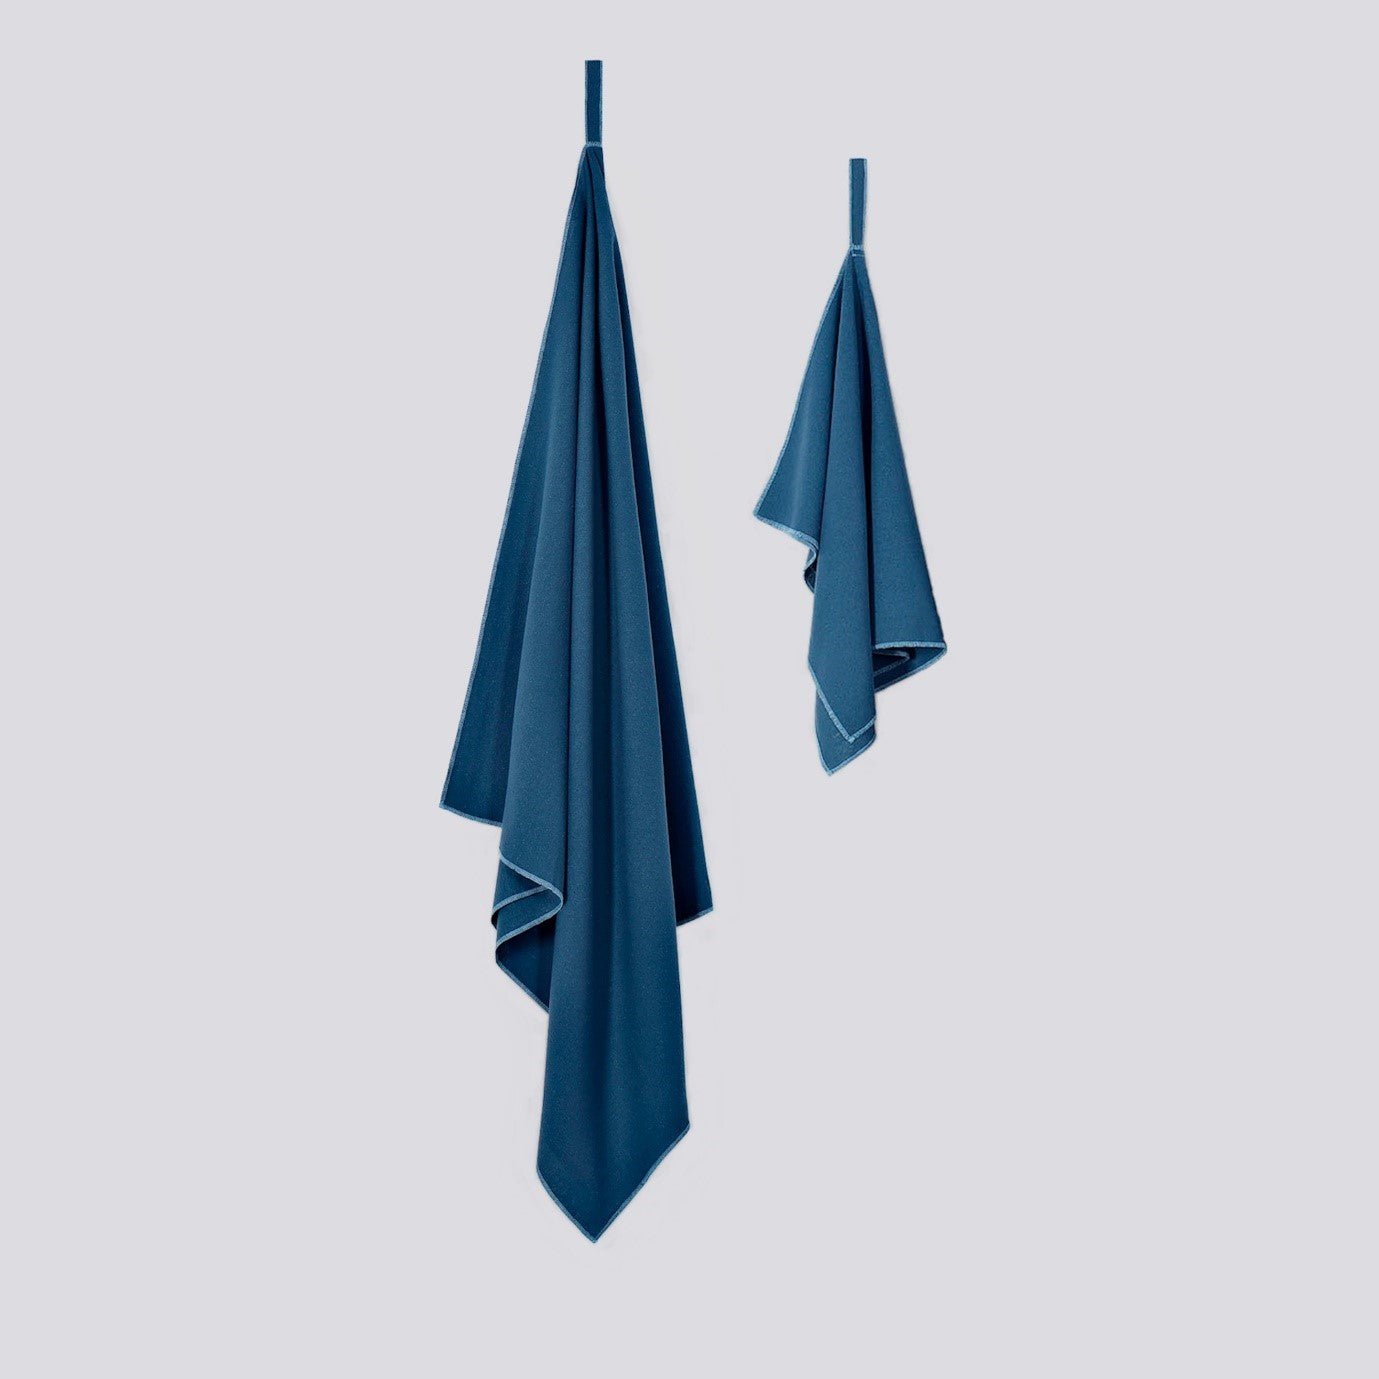 Raw Silk Travel Towel Set, Bantam Towel and Face & Hand Towel, Ensign Blue Colour, No Microfibre, Sustainable Travel Outdoor Camping Hiking Backpacking | SHIN JARDBO